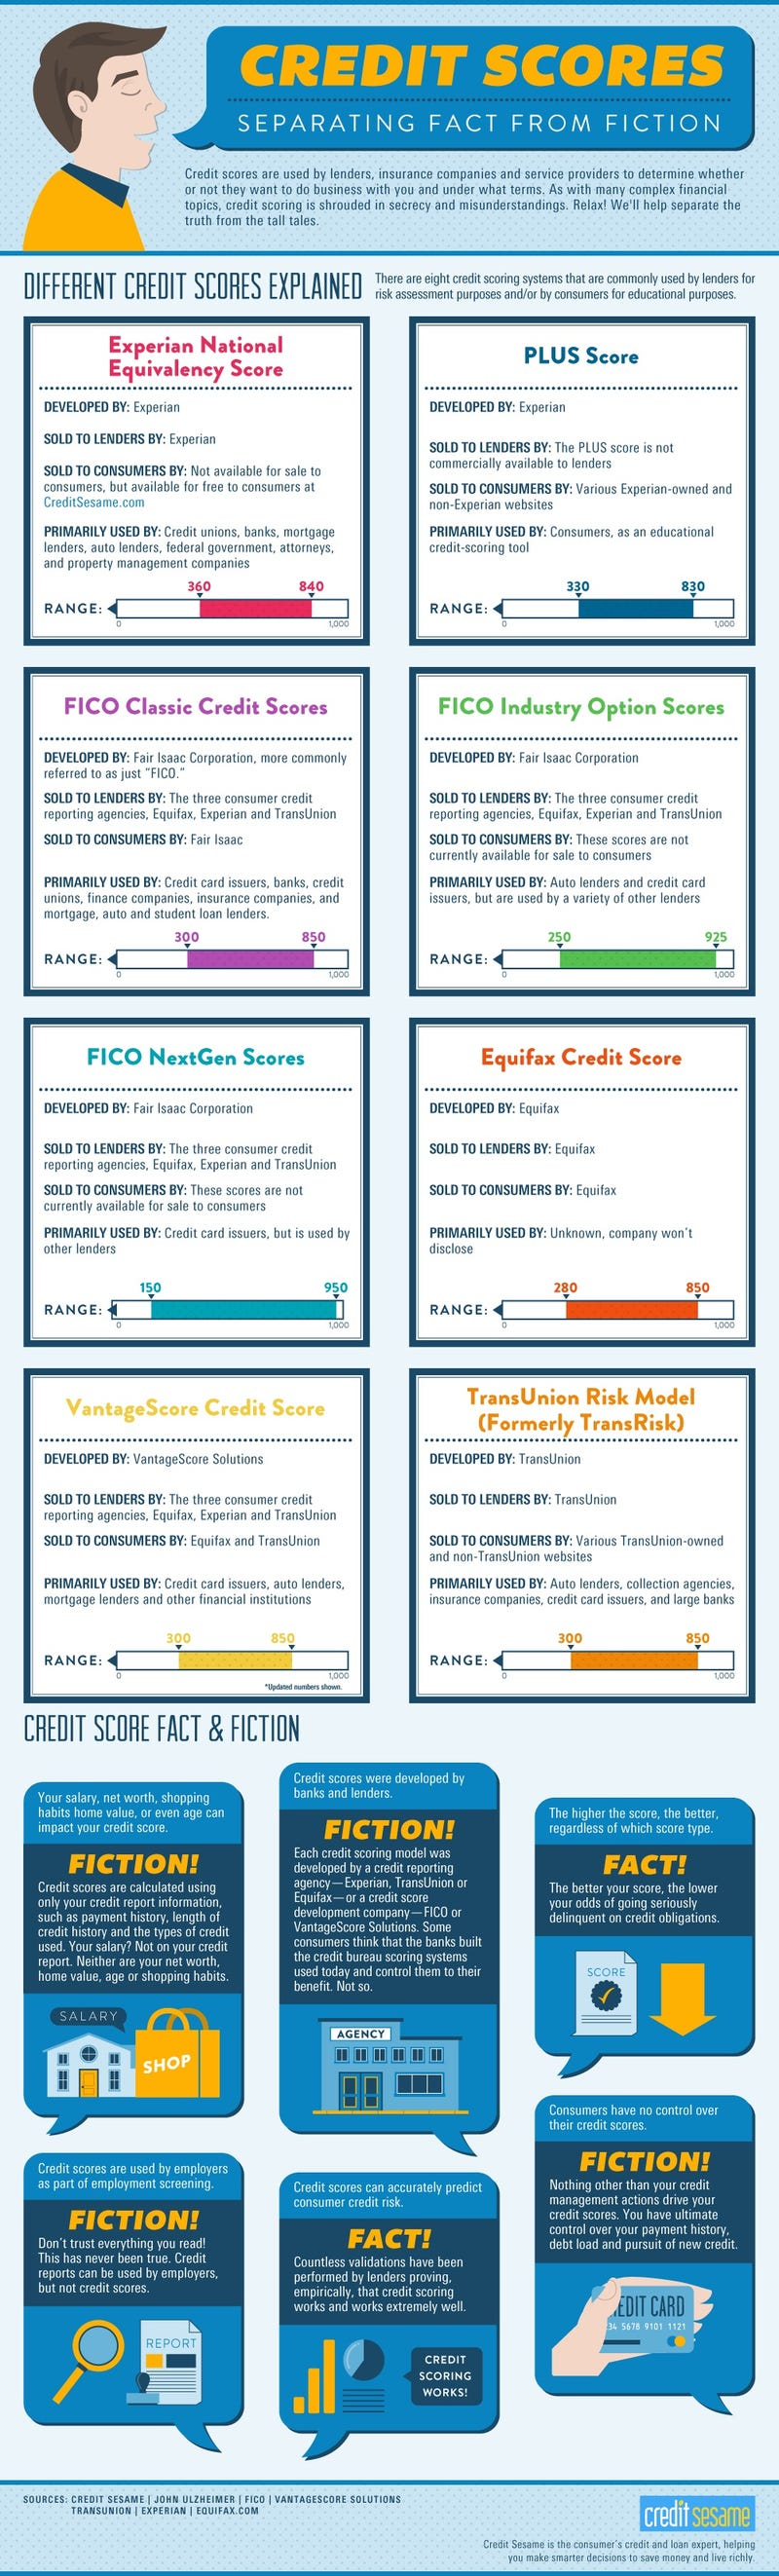 This Infographic Separates Credit Score Fact from Fiction